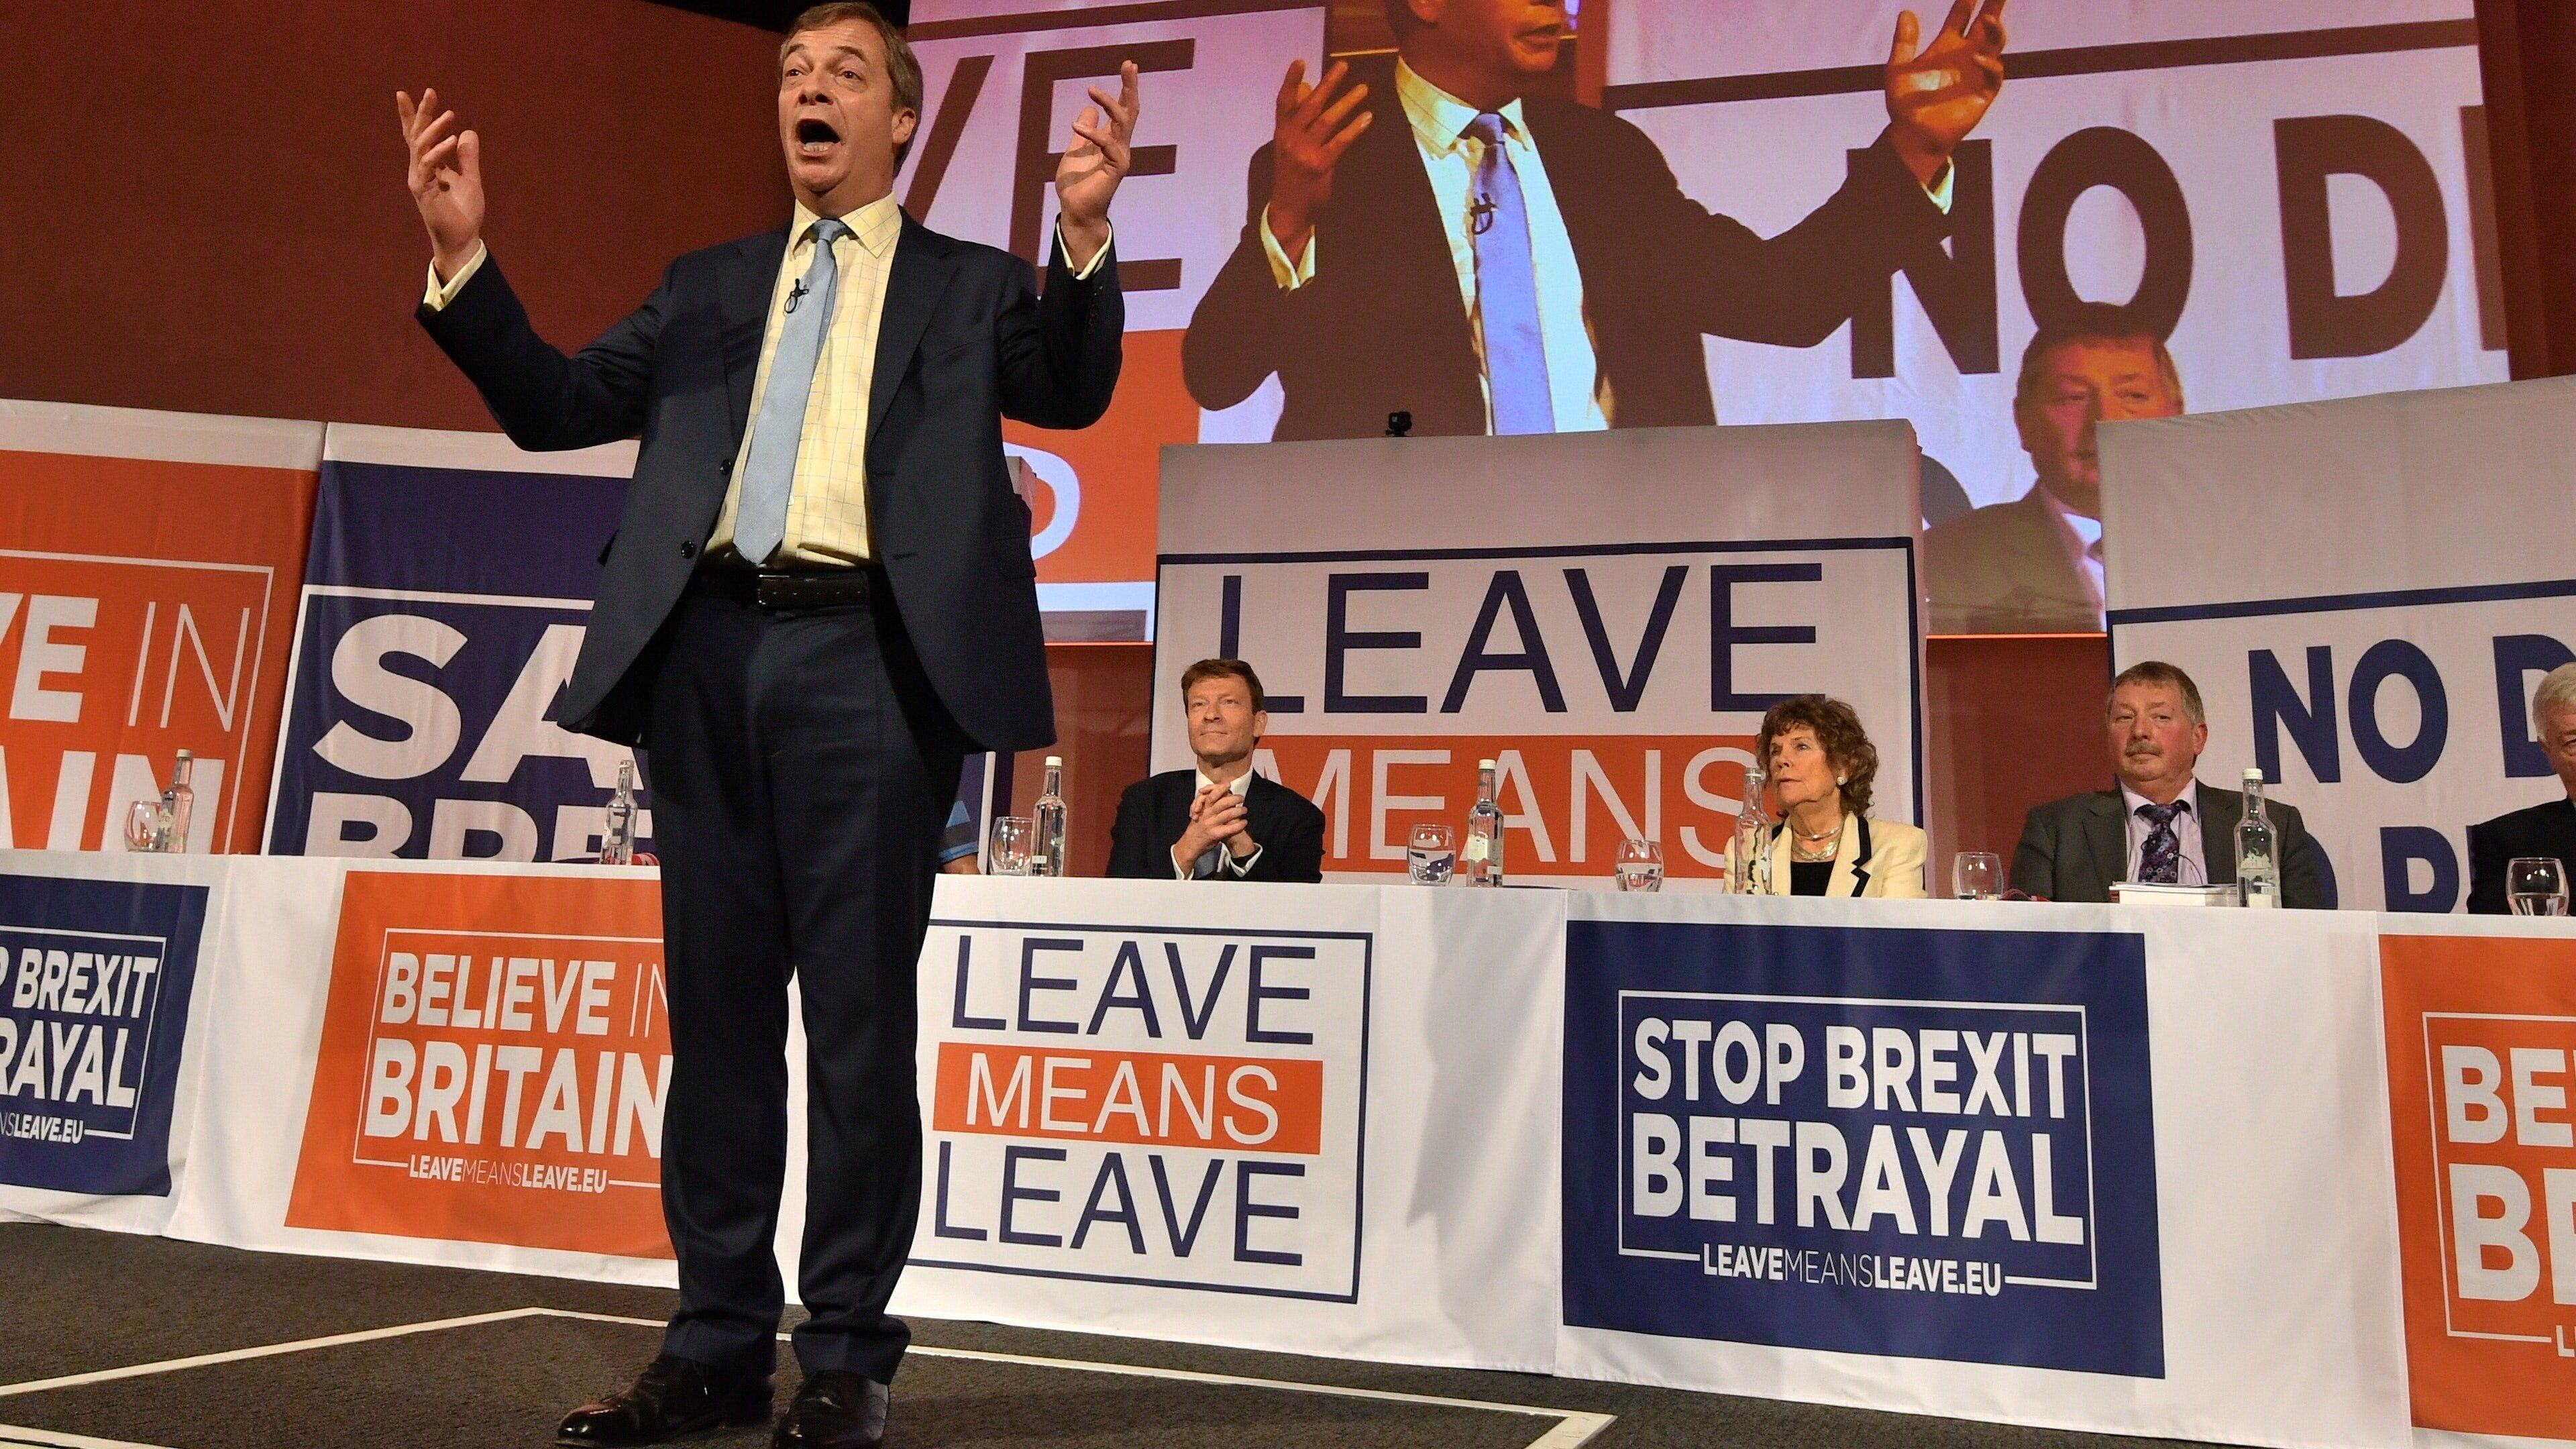 Nigel Farage Tells Brexit Campaigners To 'Get Ready' For A Second